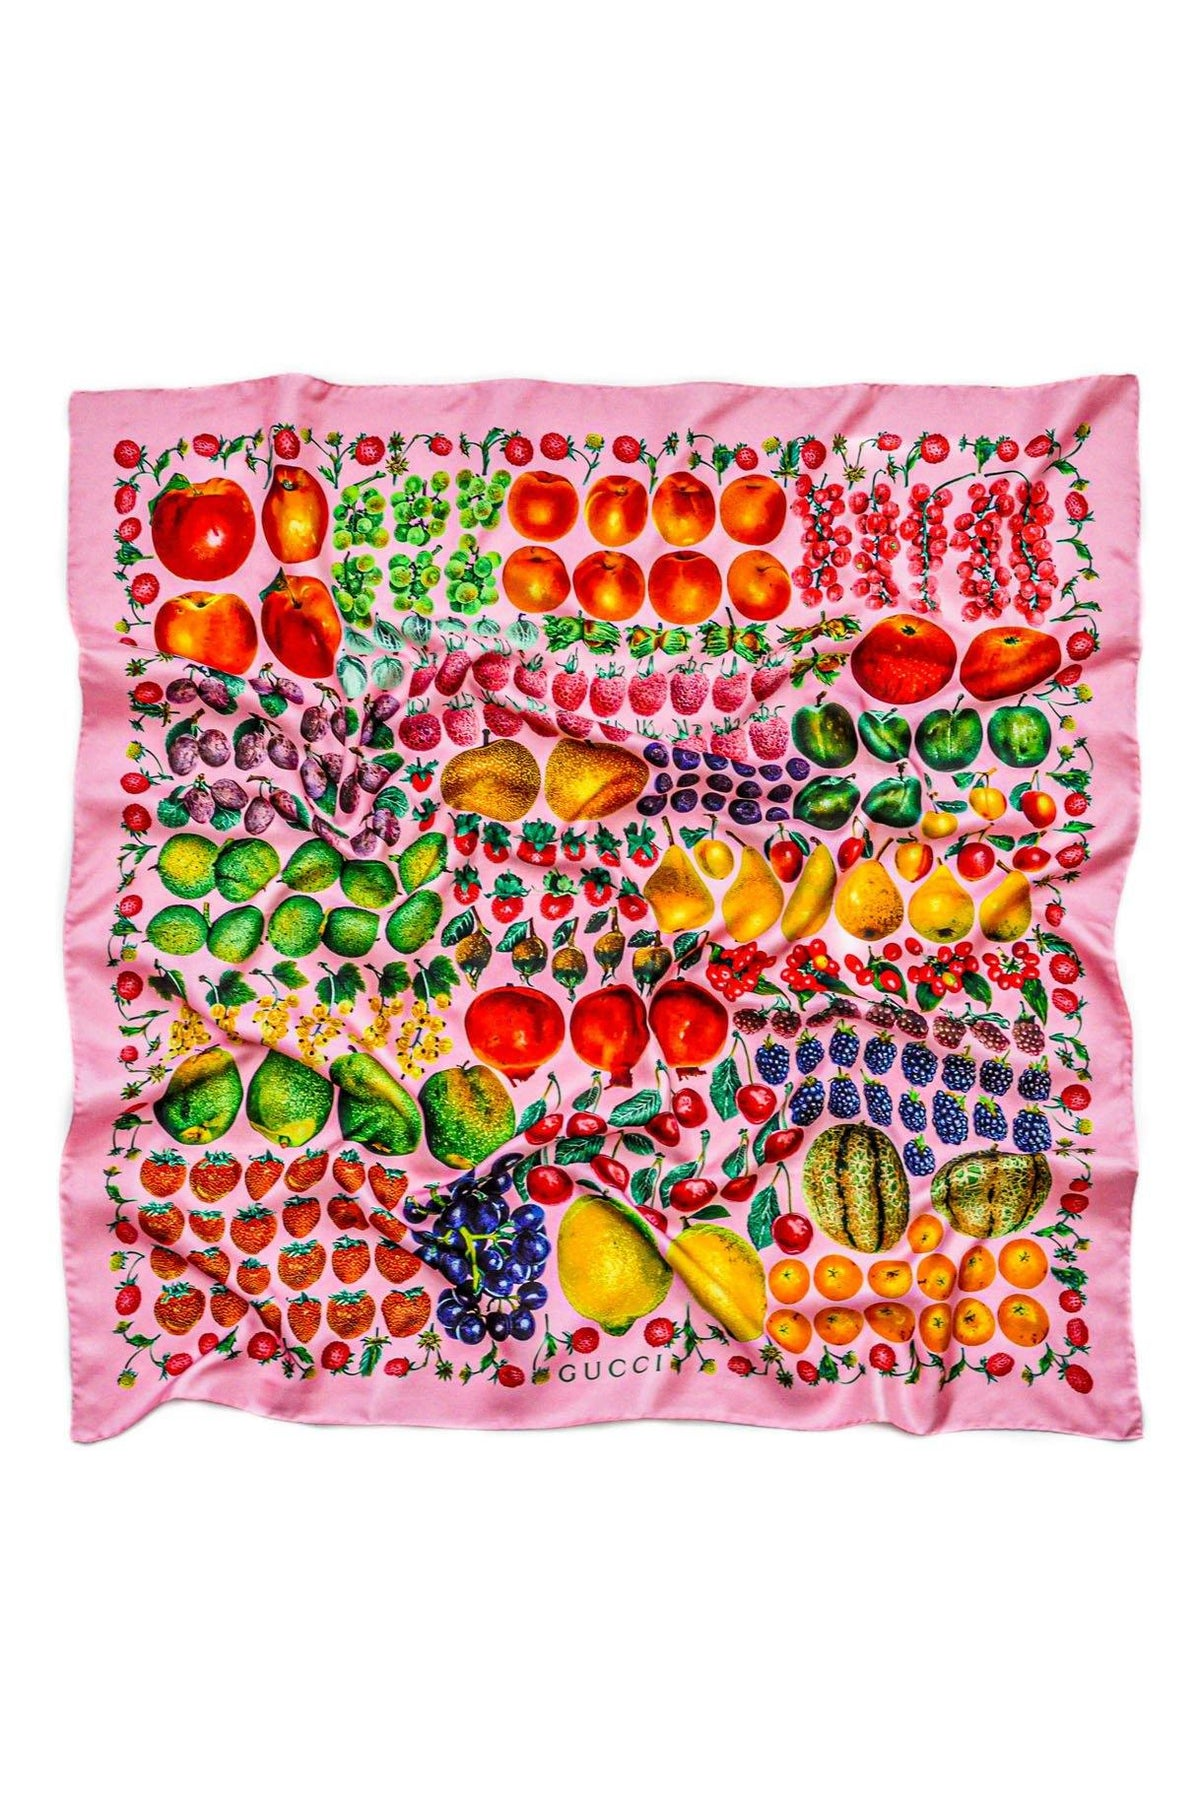 Vintage Gucci Pink Fruit Scarf from Sweet and Spark